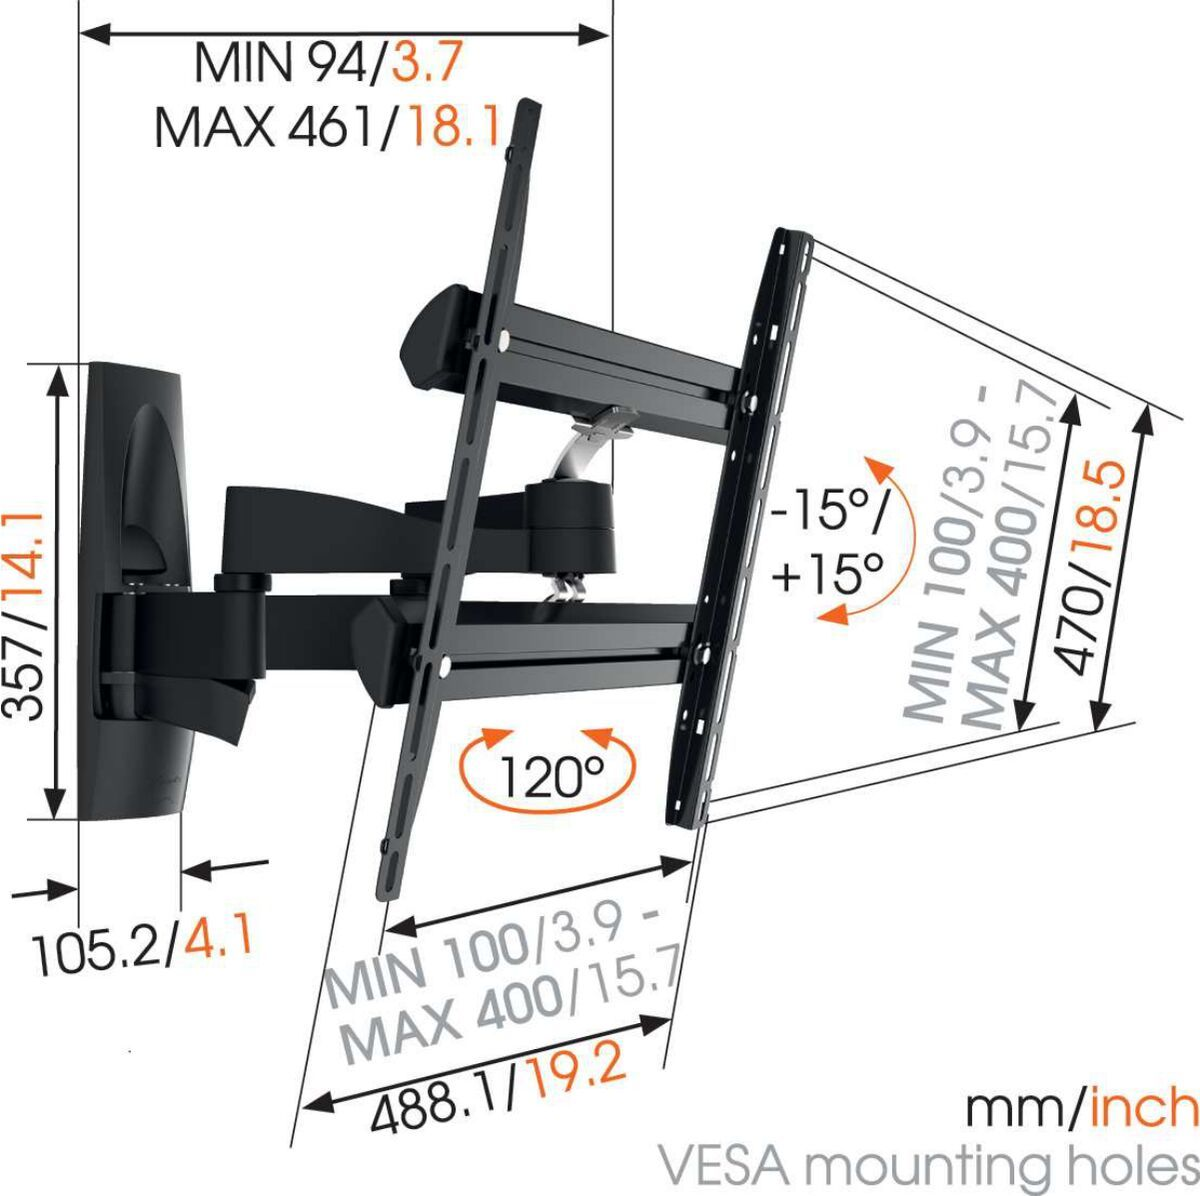 Vogel's WALL 3250 Full-Motion TV Wall Mount - Suitable for Forward and turning motion (up to 120°) - Suitable for Tilt up to 15° - Suitable for Dimensions